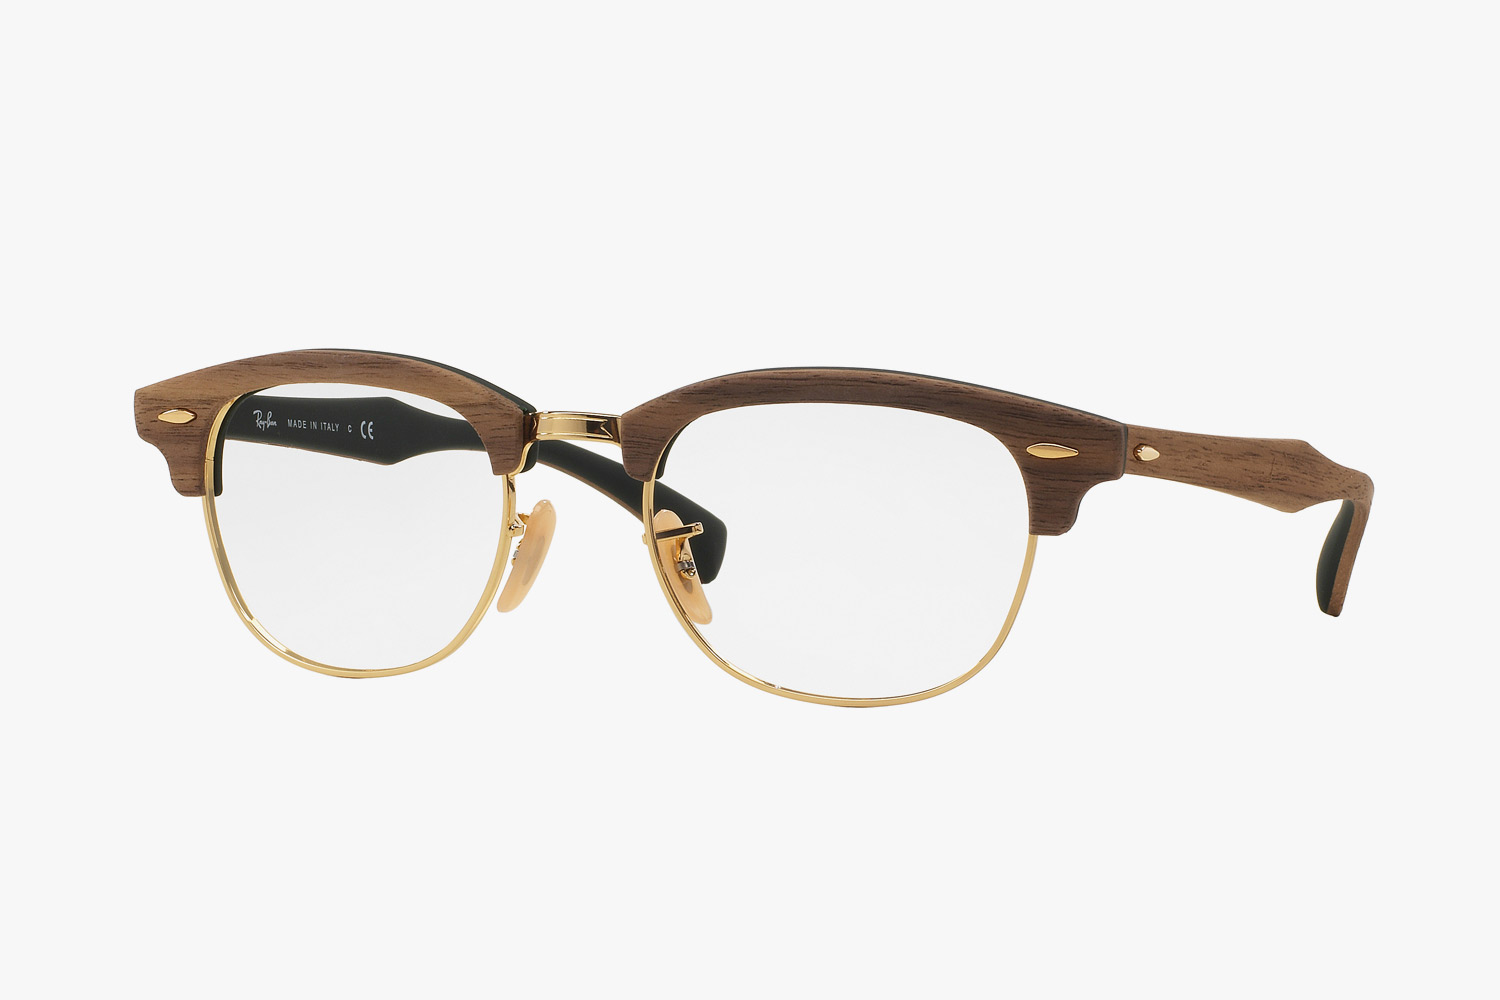 Ray-Ban-Wood-Clubmaster-Glasses-01